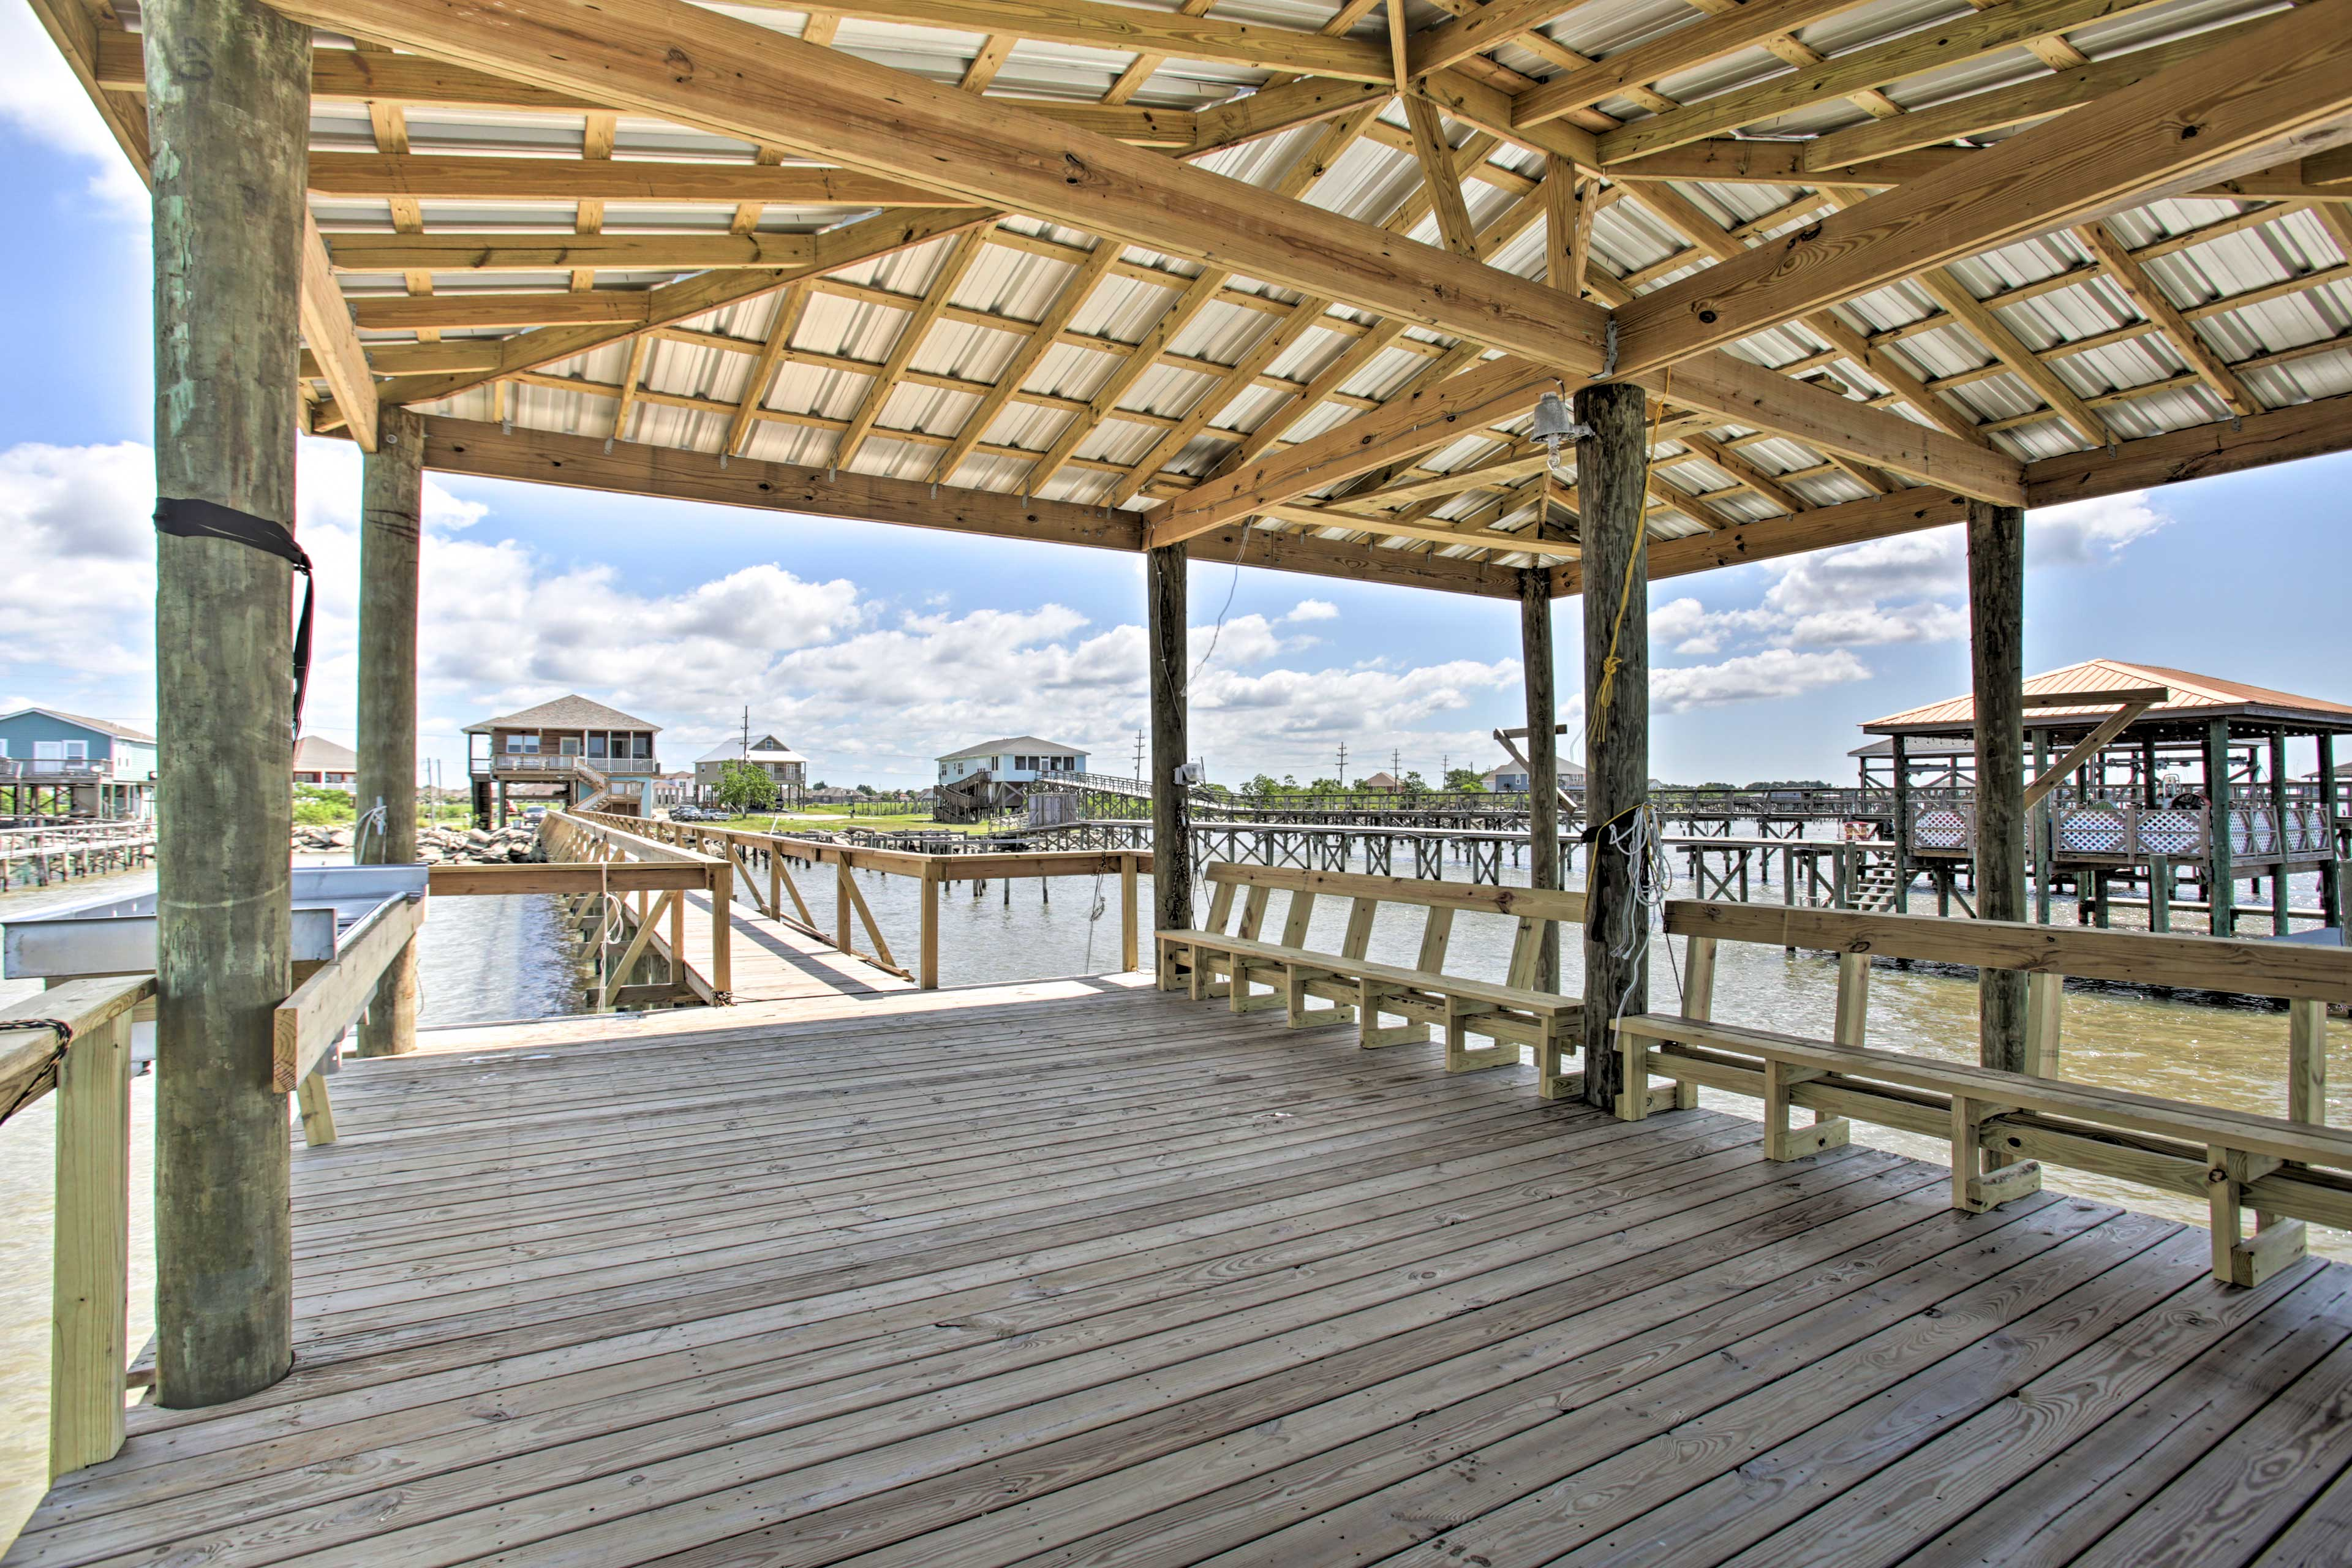 The covered dock is ideal for fishing or cleaning up after a successful outing!